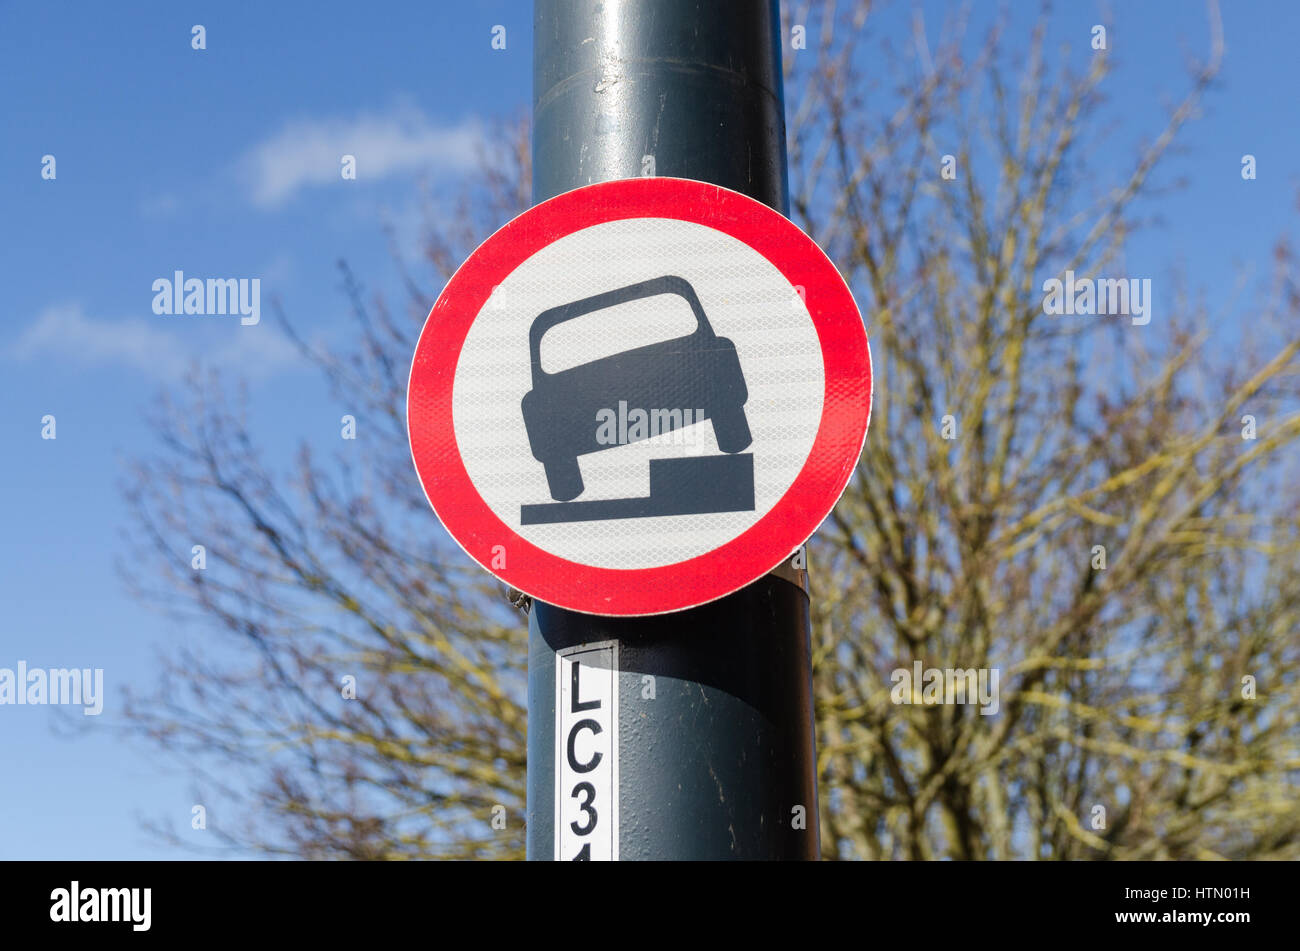 Sign warning no parking on pavement - Stock Image